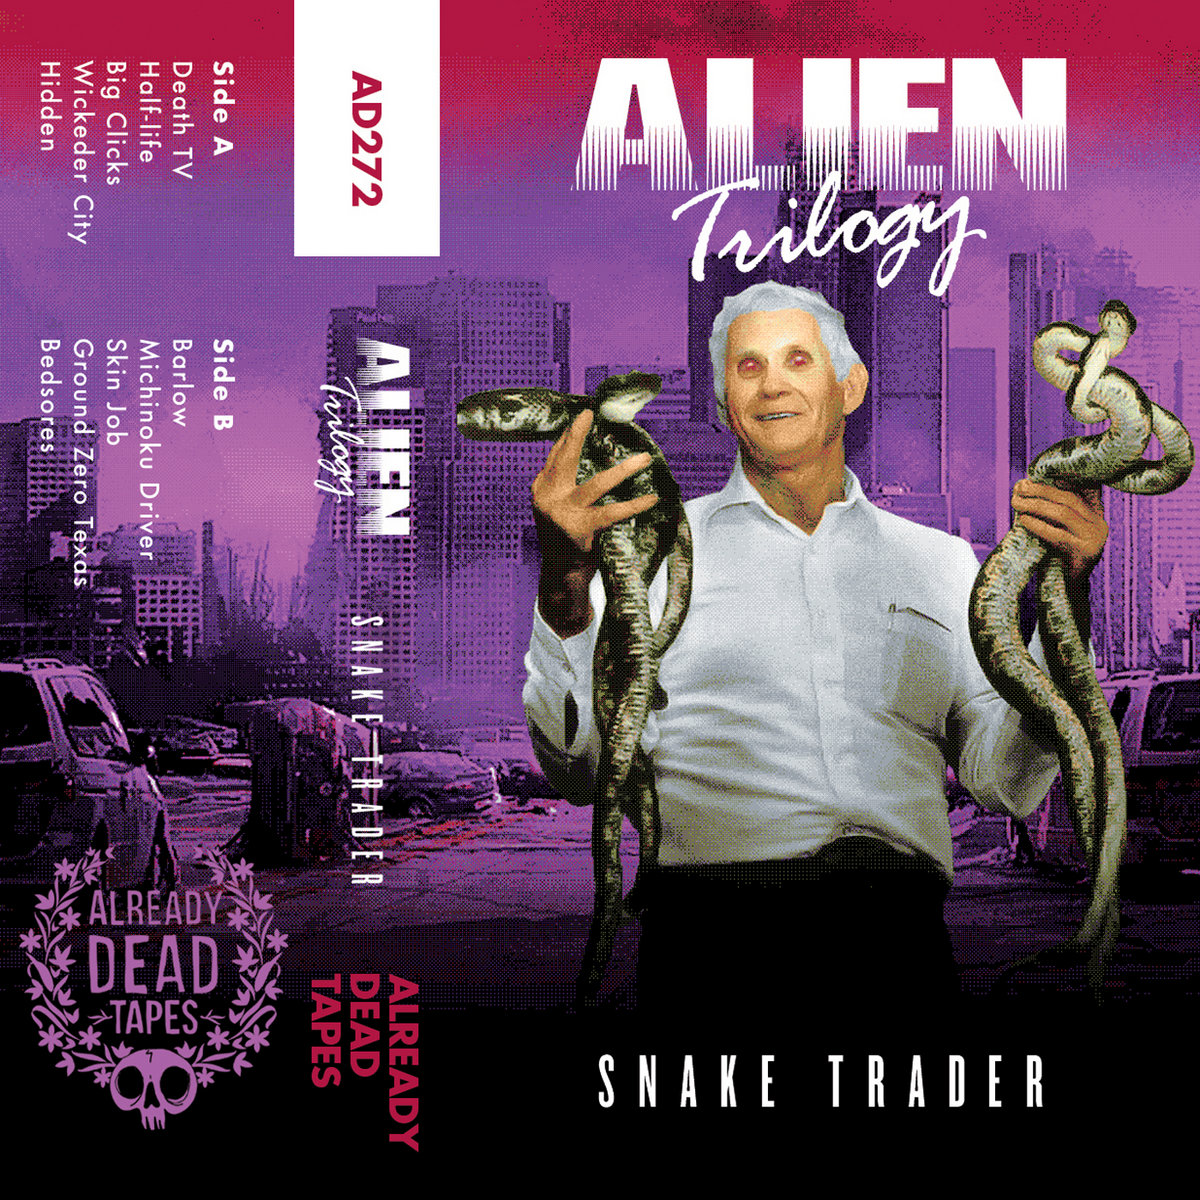 AD272 Alien Trilogy 'Snake Trader' | Already Dead Tapes and